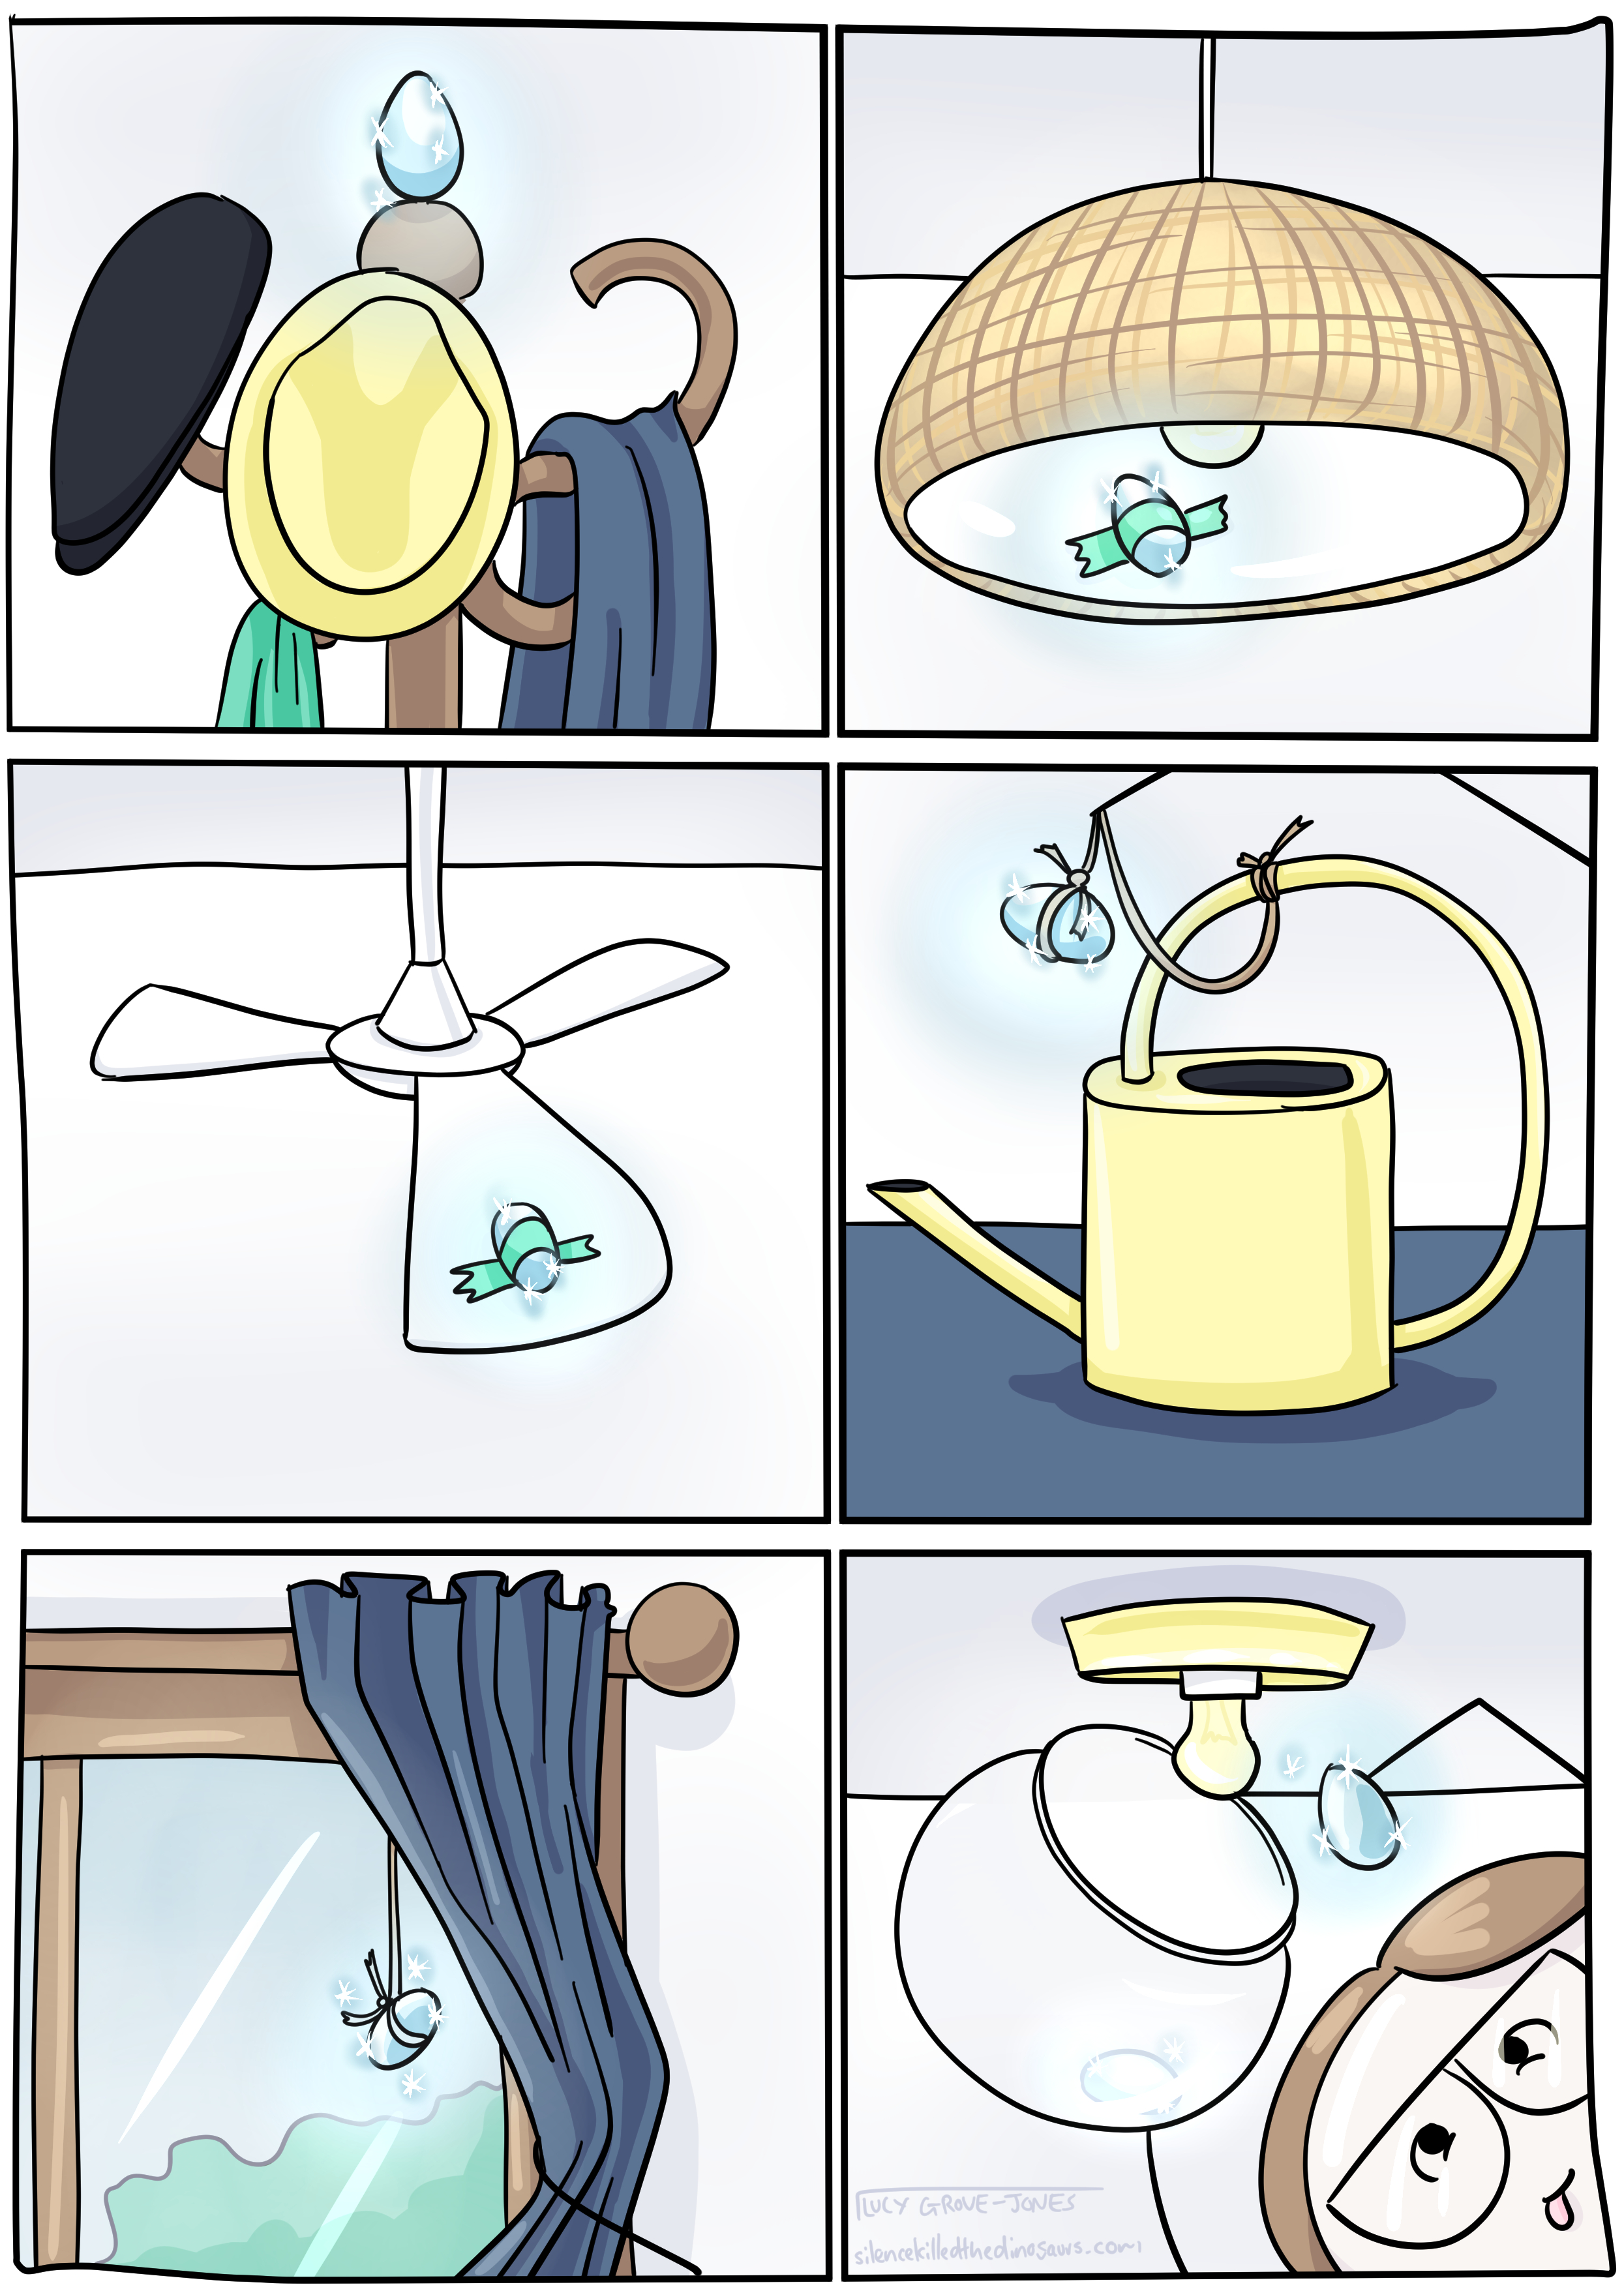 6 panels. Panel 1: an easter egg balances on top of a coat rack. Panel 2: an easter egg is tapped to the inside of a pendant light shade. Panel 3: an easter egg is taped to the top of a fan blade. Panel 4: an easter egg has been tied with twine so it hangs from the handle of a watering can into the body of the watering can. Panel 5: an easter egg has been tied with twine so that it hangs from a curtain rail between the window and the curtain. Panel 6: I have removed a bowl-light shade from the ceiling and am taking one easter egg out, another is still in the light fitting.